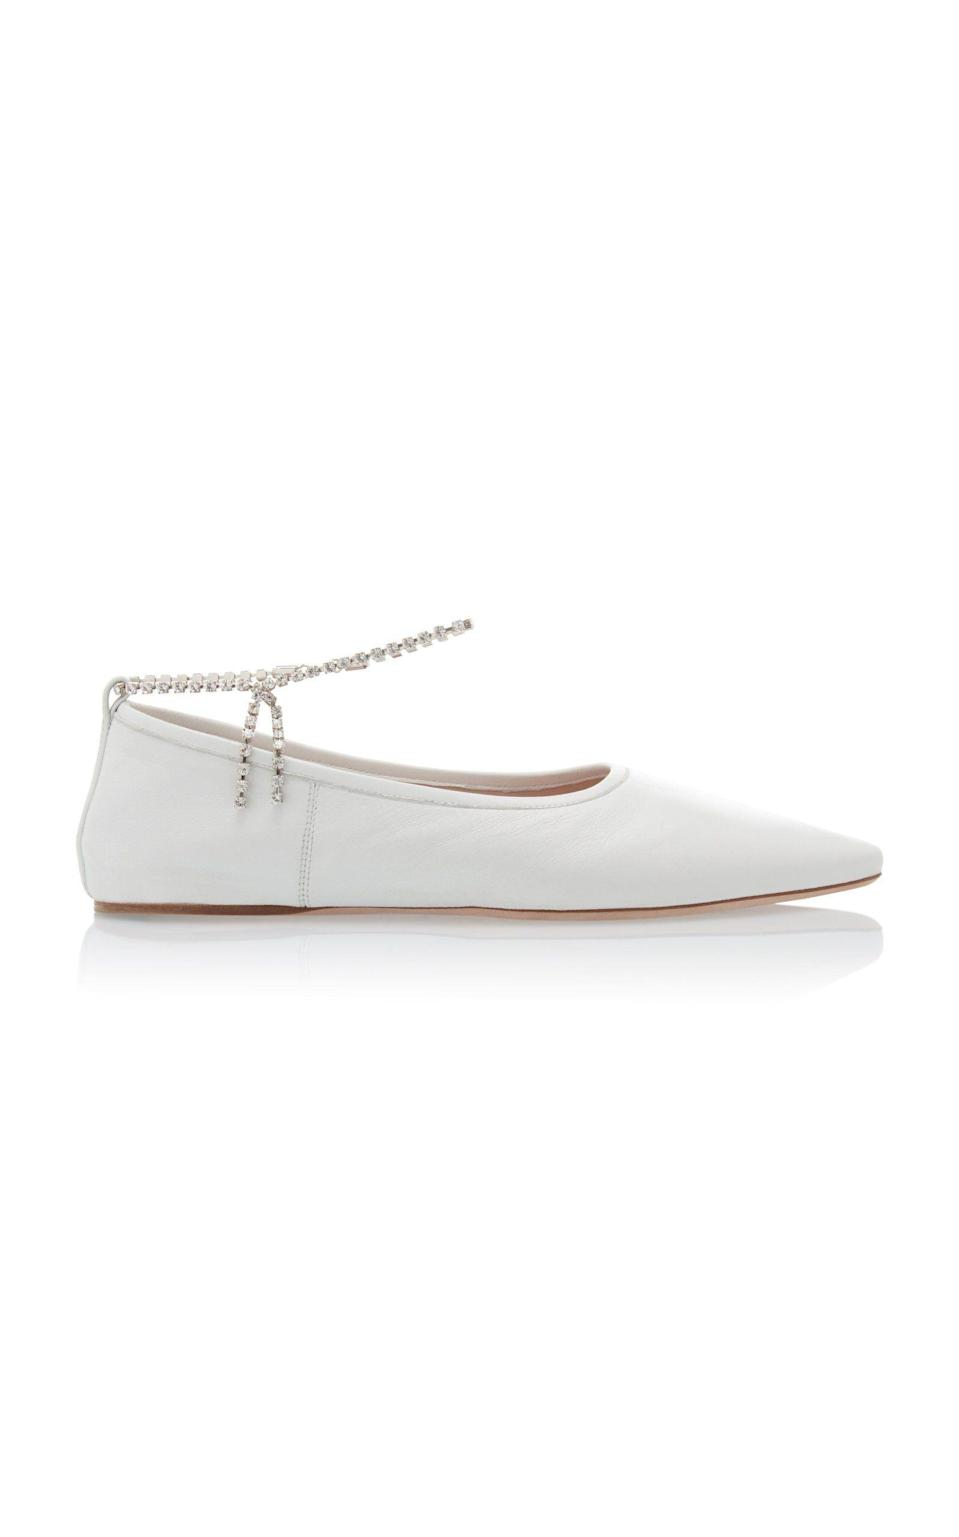 """<p><strong>Miu Miu</strong></p><p>modaoperandi.com</p><p><strong>$690.00</strong></p><p><a href=""""https://go.redirectingat.com?id=74968X1596630&url=https%3A%2F%2Fwww.modaoperandi.com%2Fwomen%2Fp%2Fmiu-miu%2Fleather-ballet-flats-2%2F384505&sref=https%3A%2F%2Fwww.harpersbazaar.com%2Fwedding%2Fbridal-fashion%2Fg36113322%2Fwedding-flats-for-brides%2F"""" rel=""""nofollow noopener"""" target=""""_blank"""" data-ylk=""""slk:SHOP NOW"""" class=""""link rapid-noclick-resp"""">SHOP NOW</a></p><p>Upgrade your flats with options that have built-in embellishments, like these crystal anklets. </p>"""